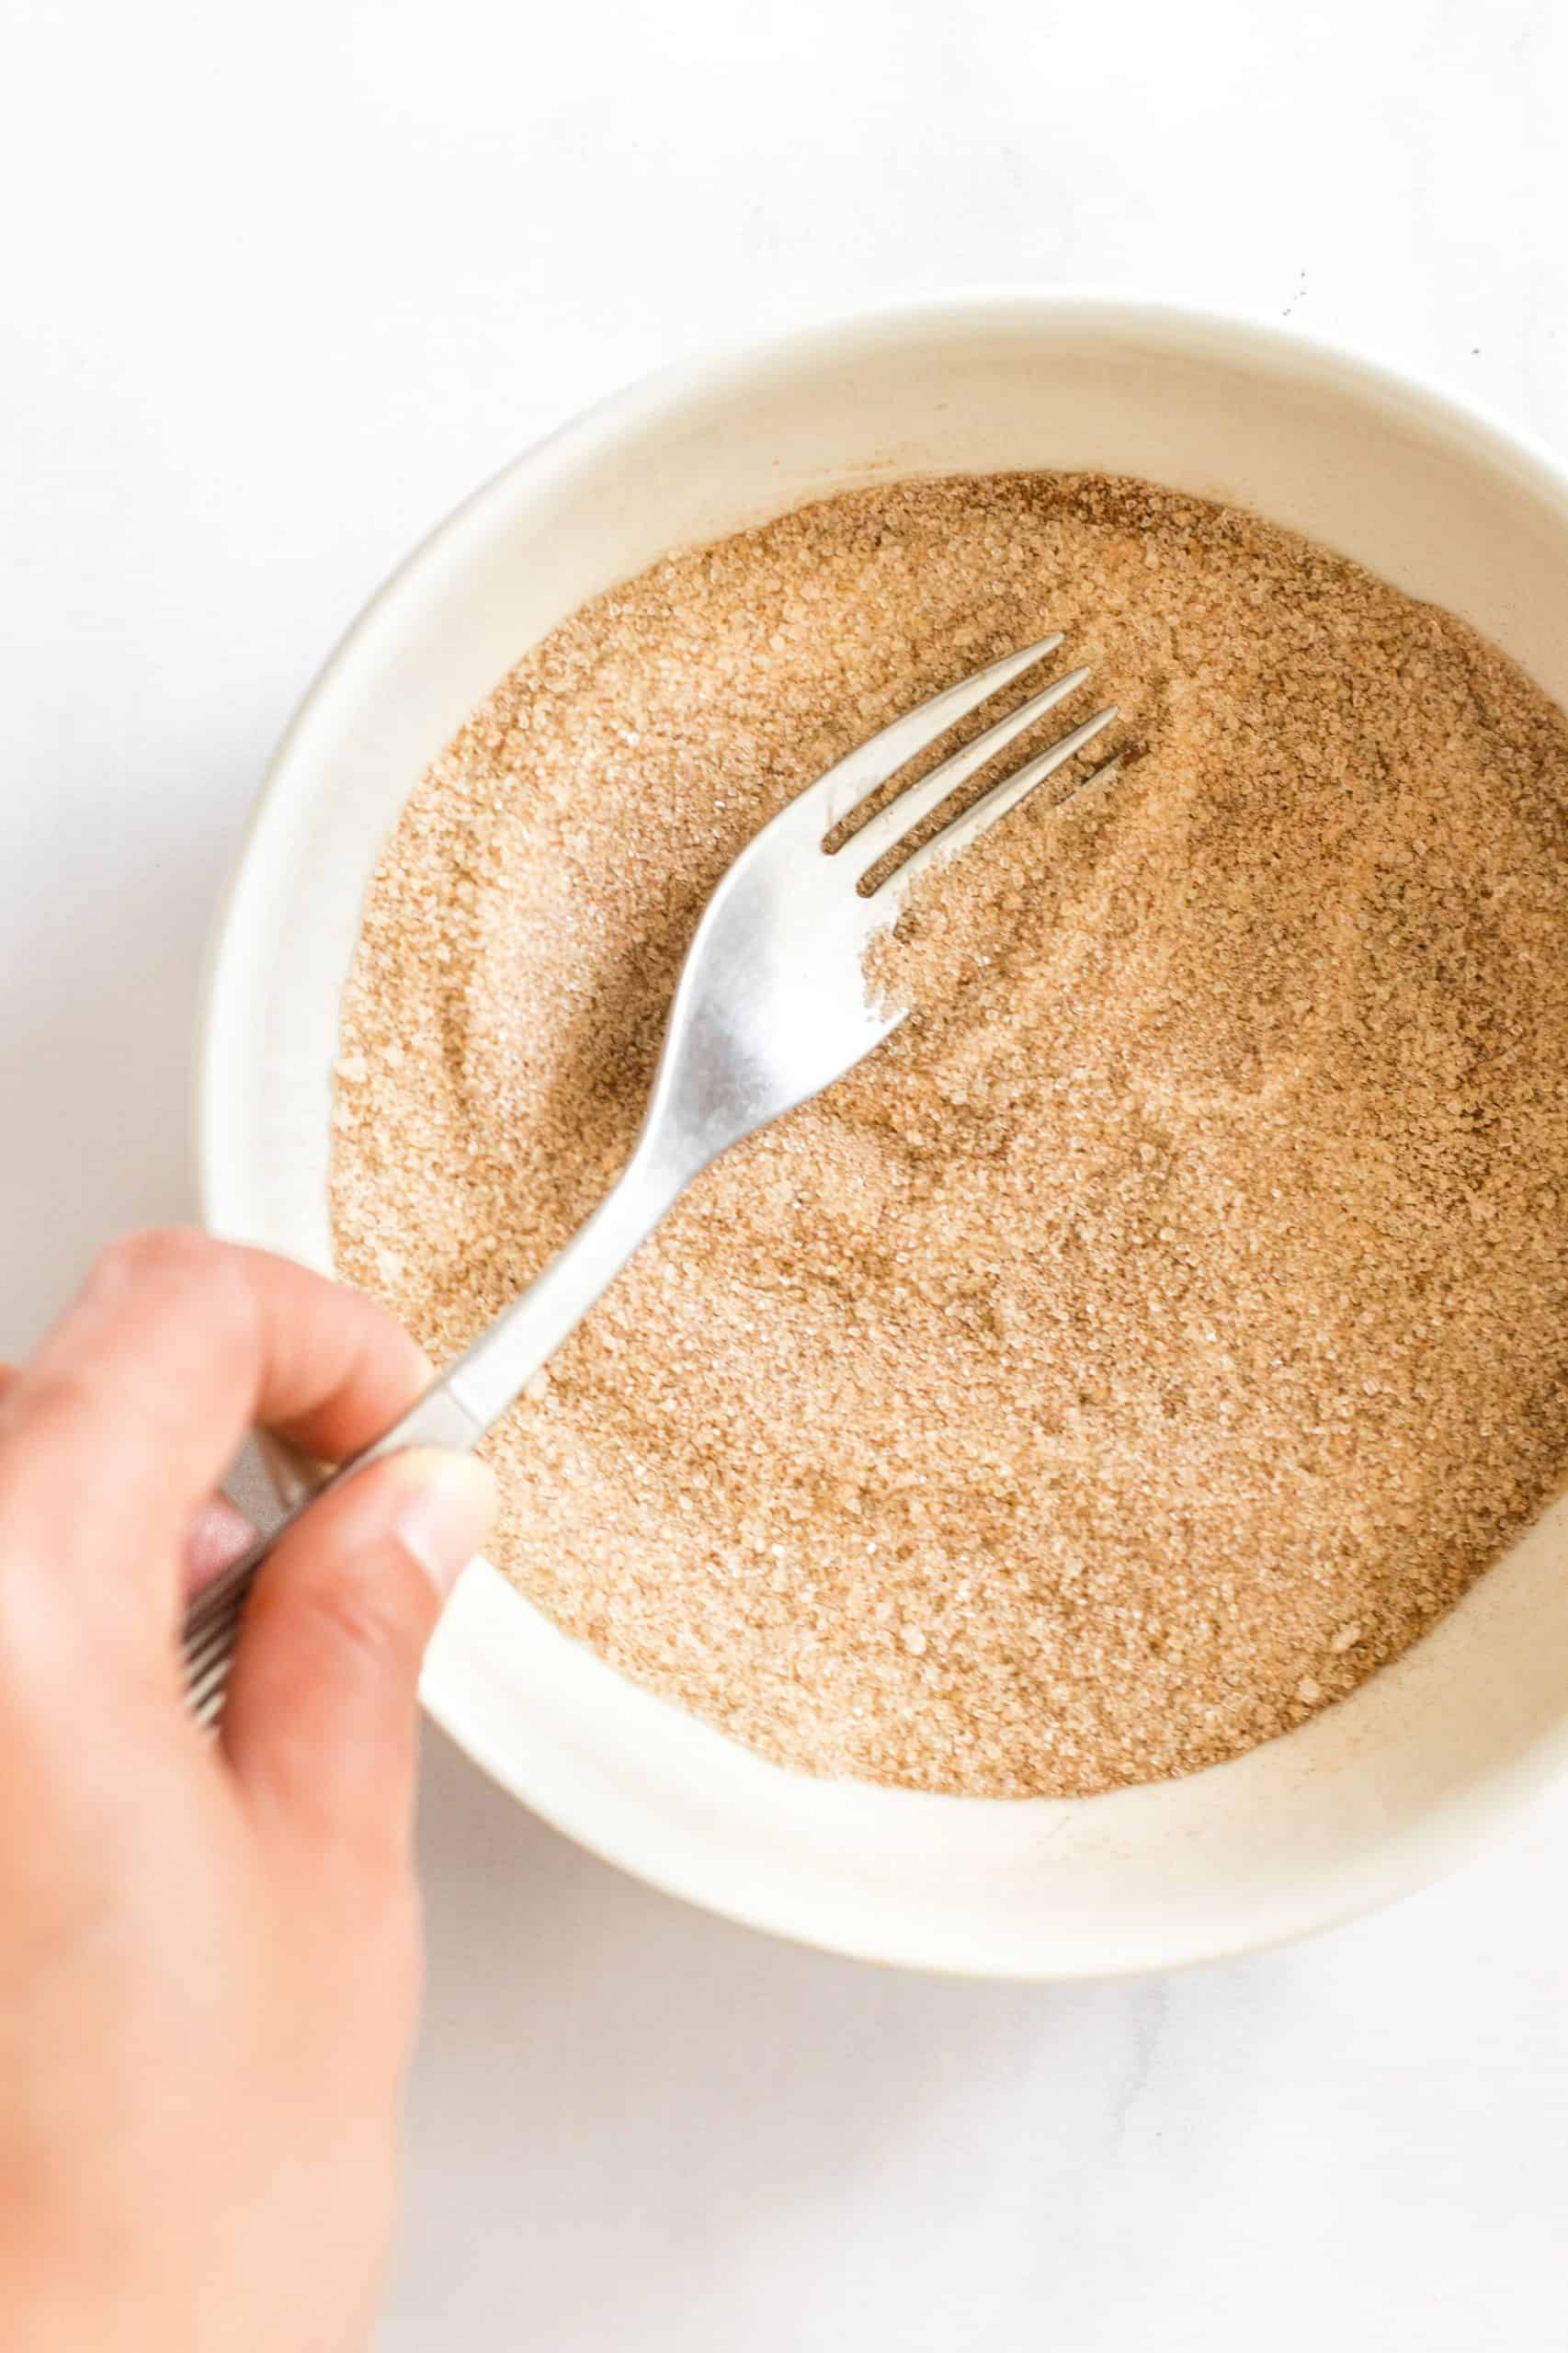 Fork mixing cinnamon sugar mixture in a white bowl.